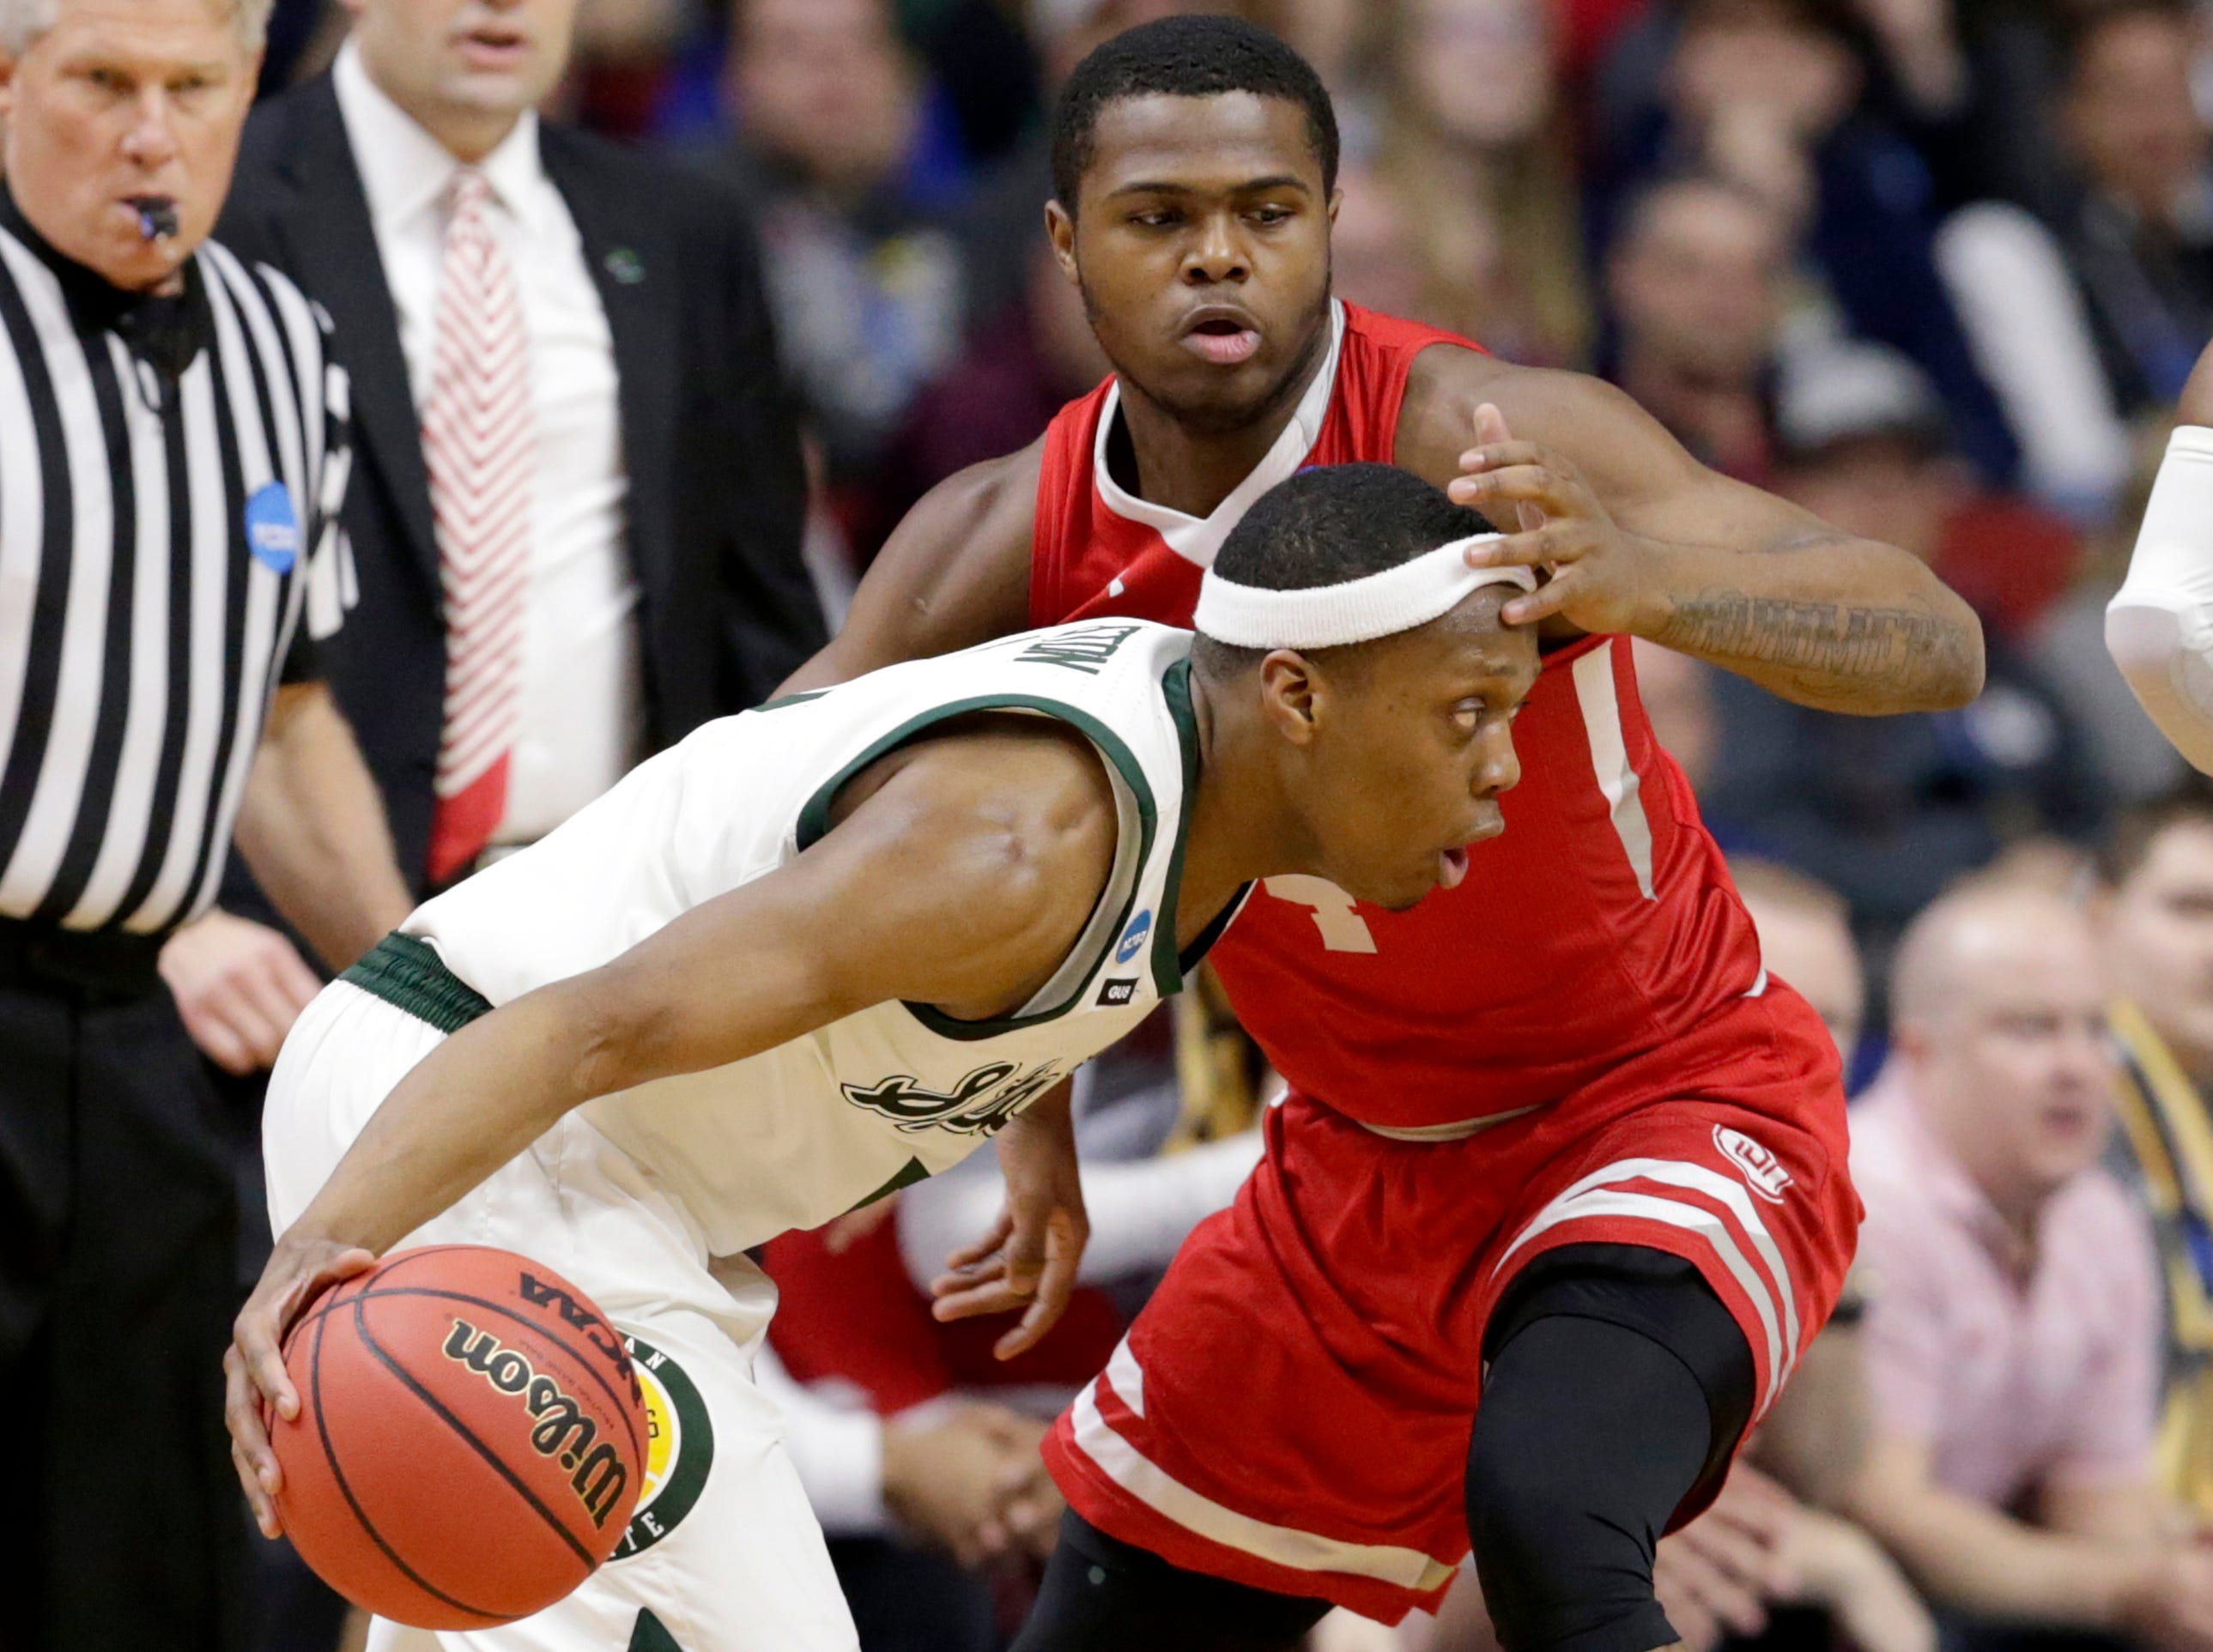 Michigan State's Cassius Winston, front, drives around Bradley's Armon Brummett, rear, during the first half of a first round men's college basketball game in the NCAA Tournament in Des Moines, Iowa, Thursday, March 21, 2019.